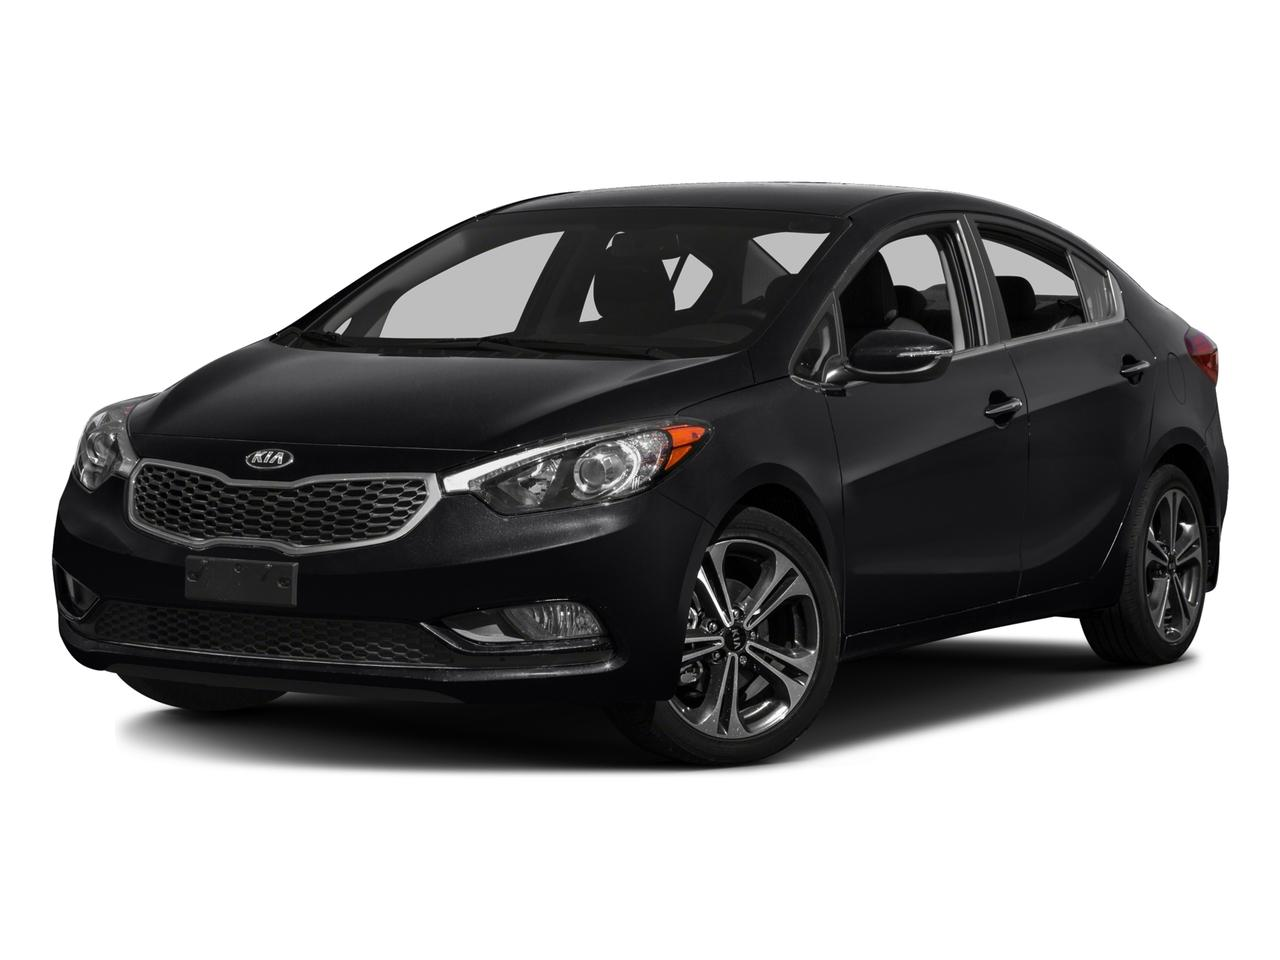 2016 Kia Forte Vehicle Photo in Grapevine, TX 76051